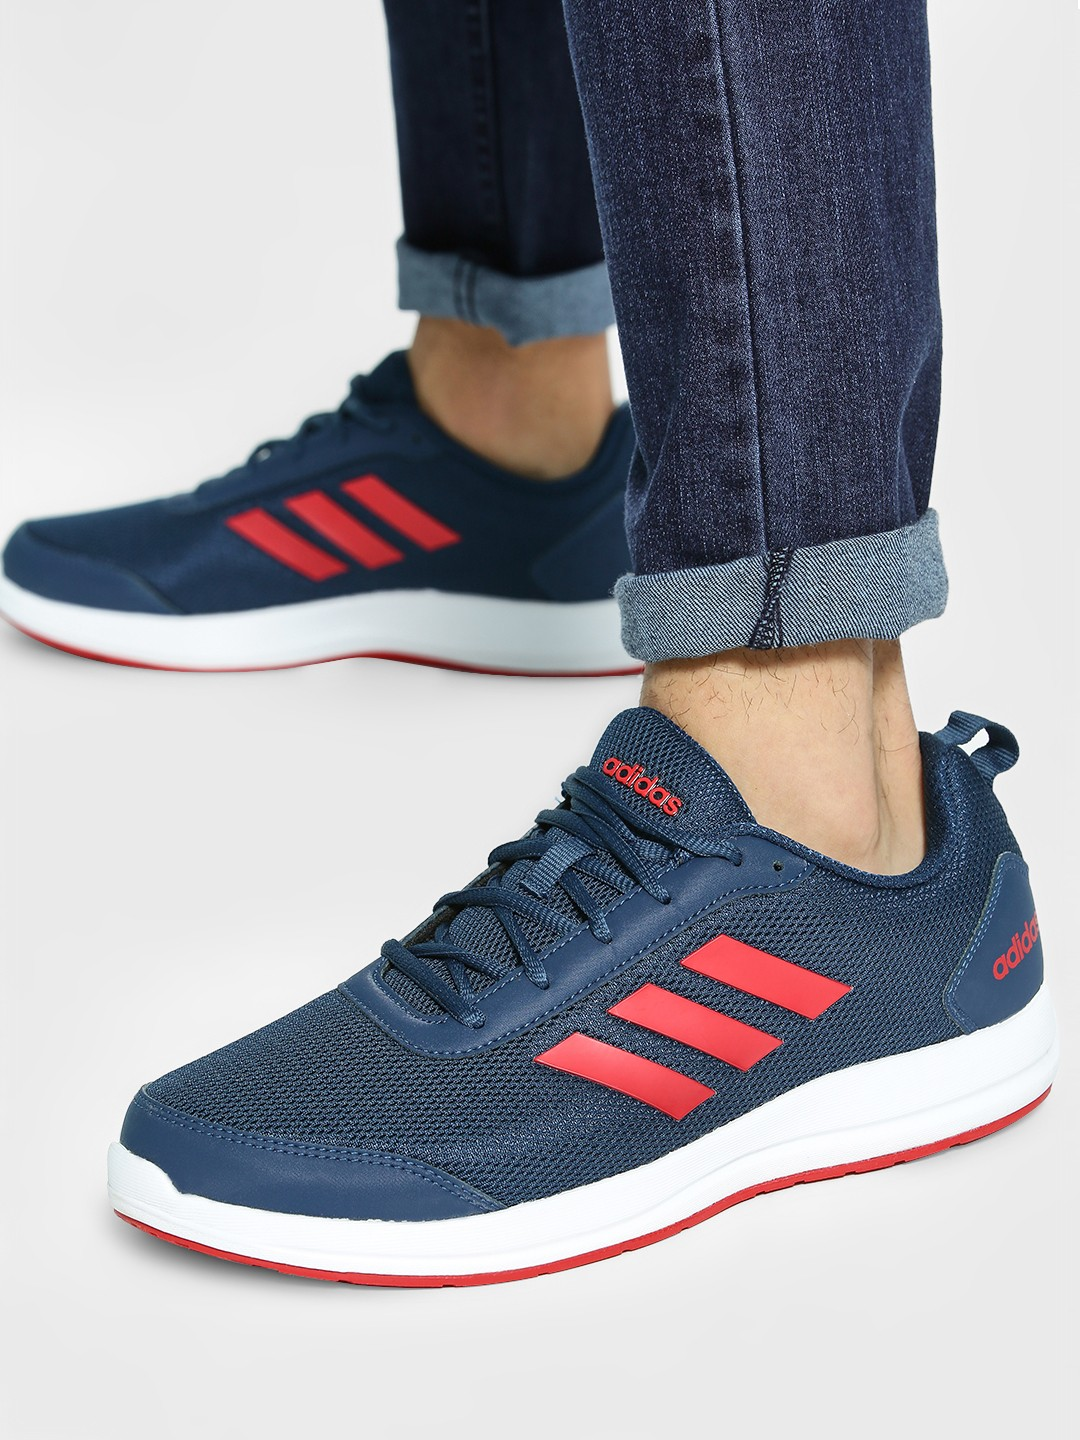 Adidas Blue Yking 2.0 Shoes 1